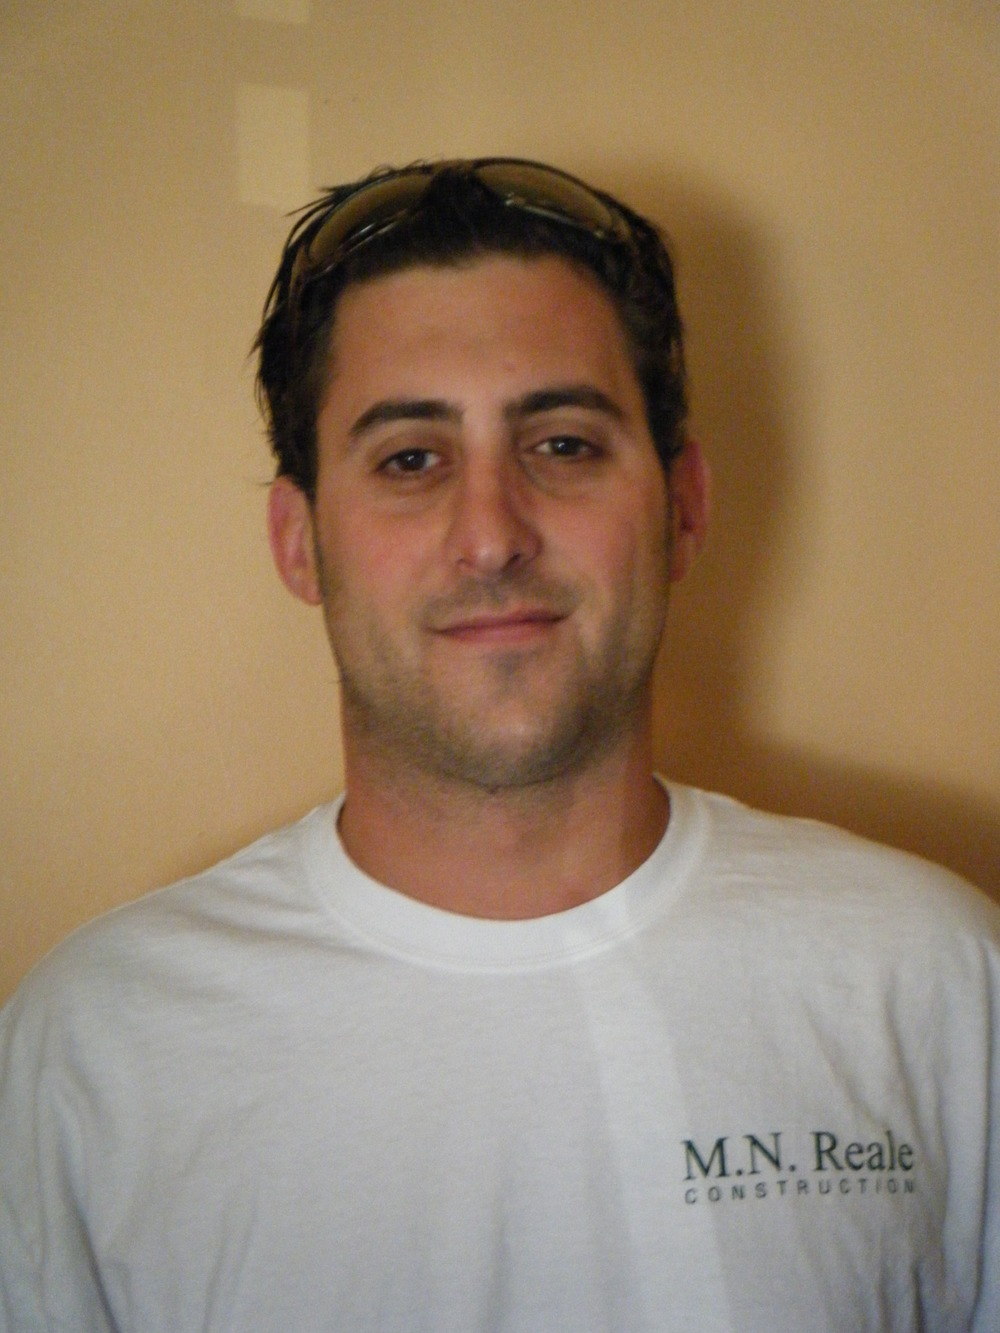 Matt Reale<br>Construction Contractor